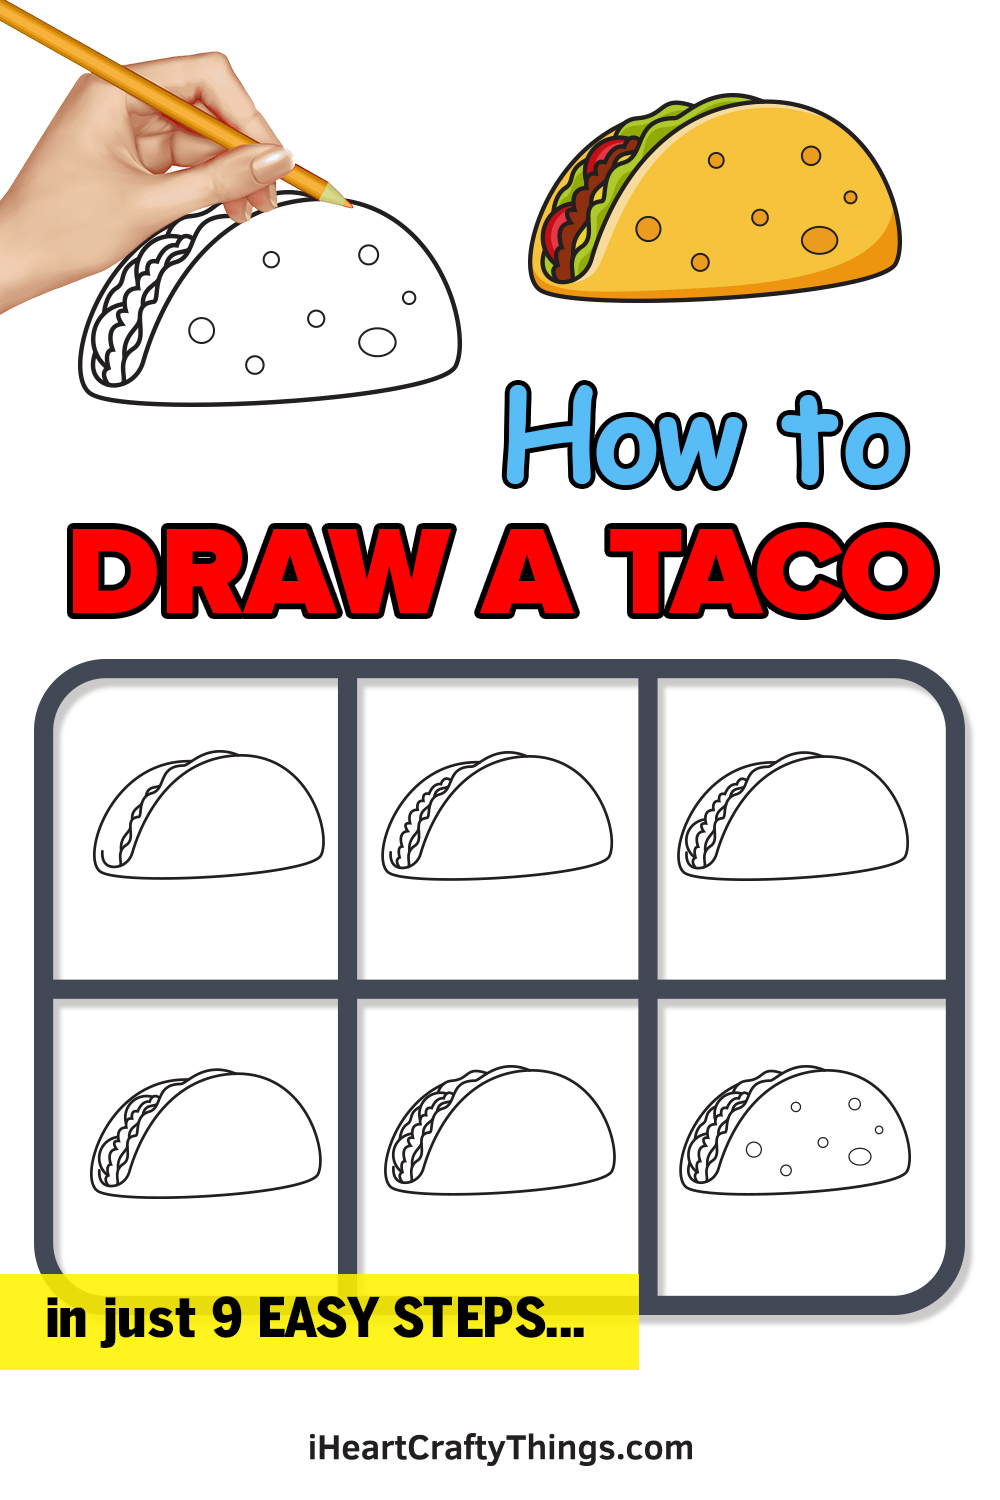 how to draw a taco in 9 easy steps